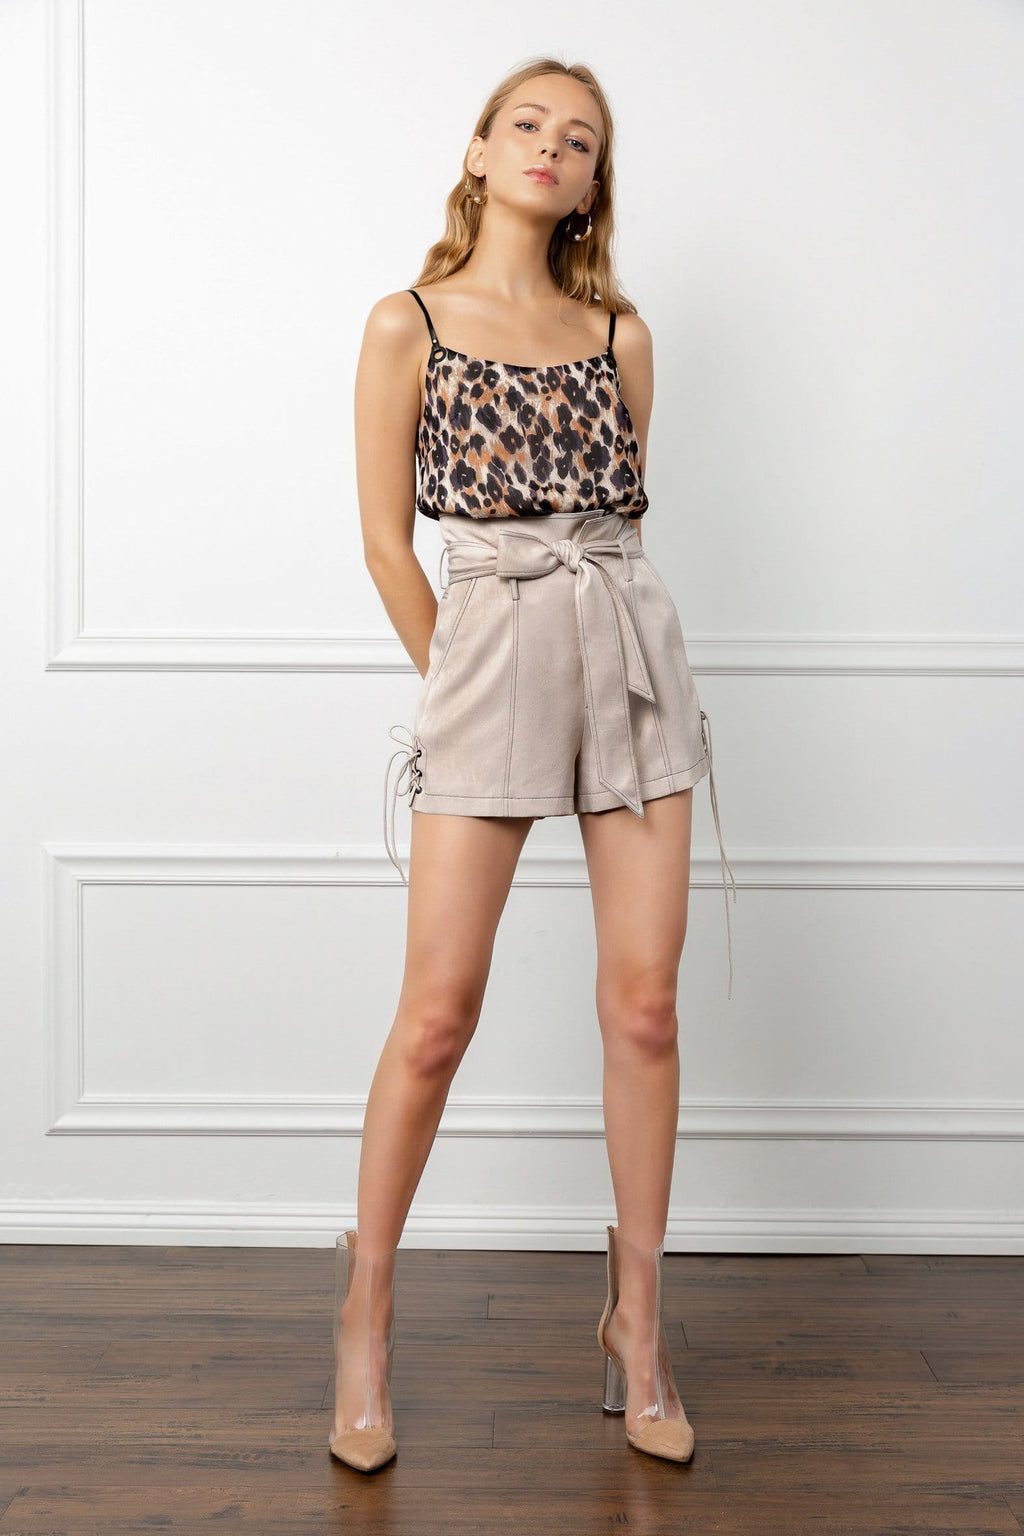 Blonde female model full body shot wearing a cheetah leopard print spaghetti strap top and beige shorts